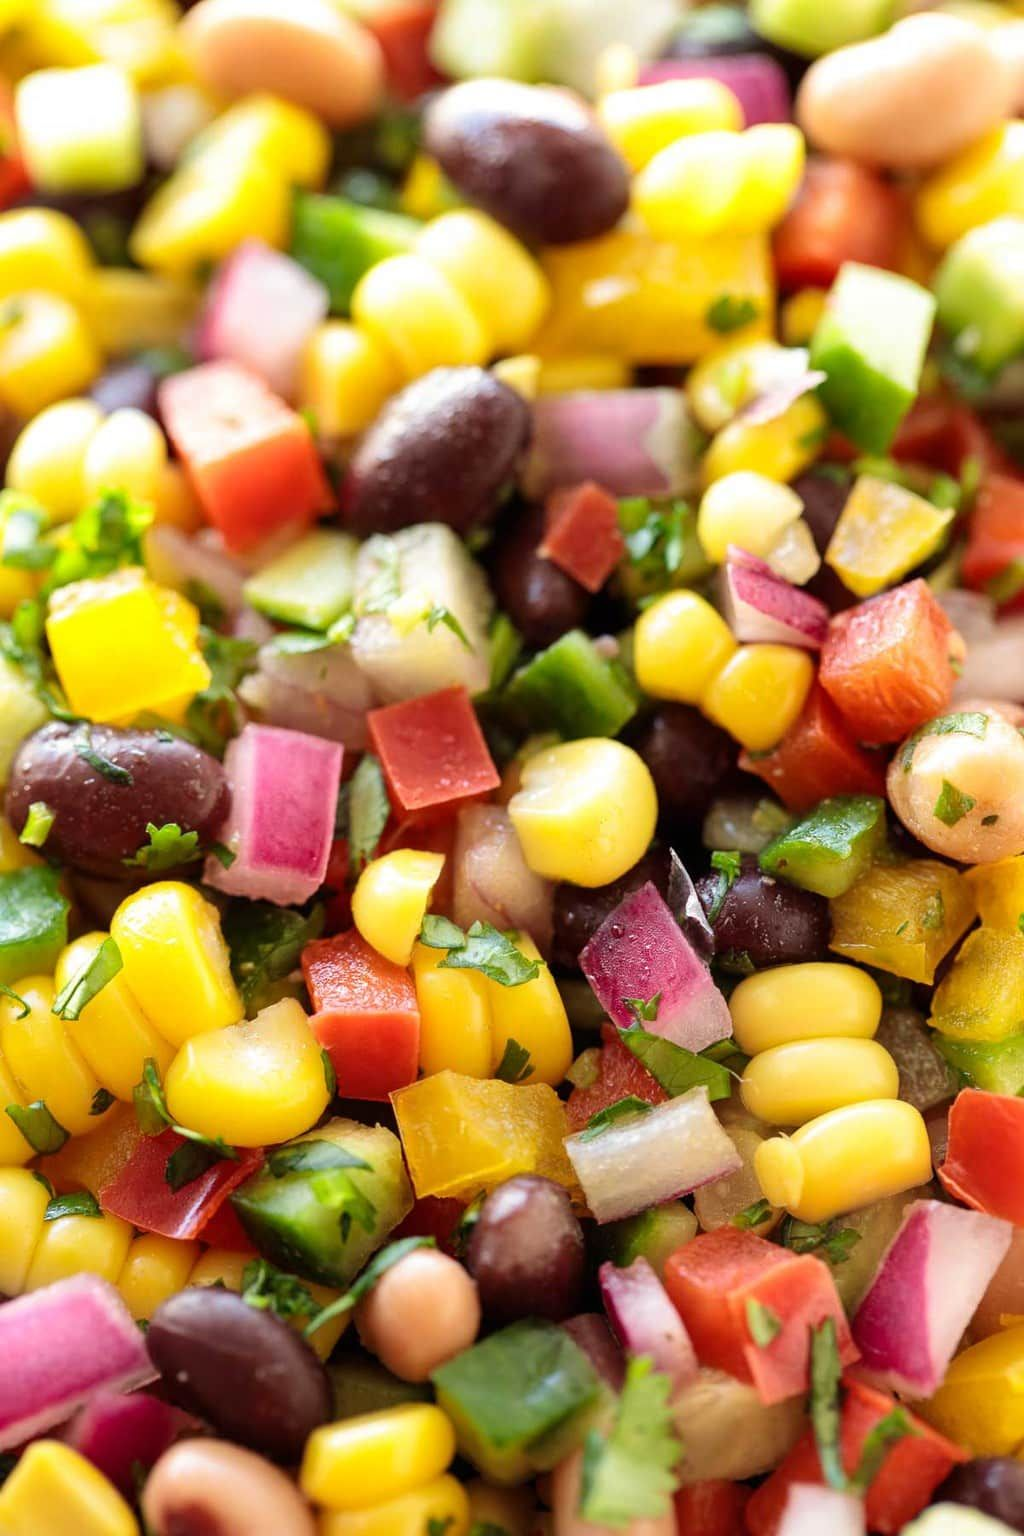 Mexican Black Bean Salad Recipe With Images Bean Salad Recipes Corn And Bean Salad Mexican Black Bean Salad